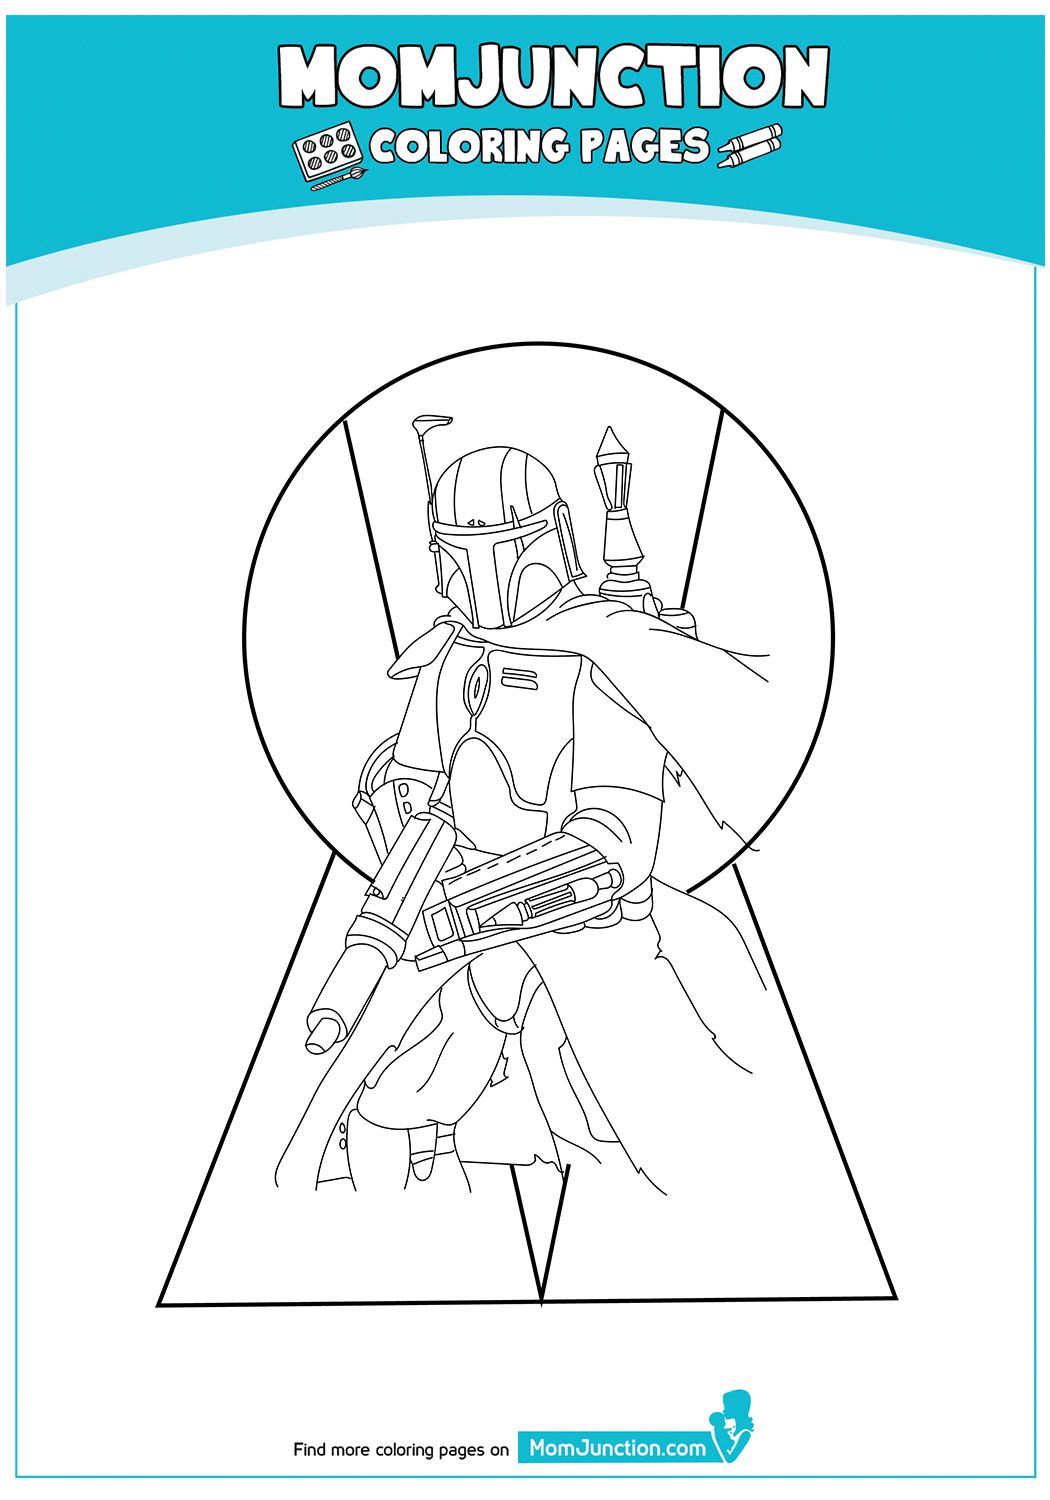 TheRiseOfBoba17 Coloring pages, Boba fett, Toddler